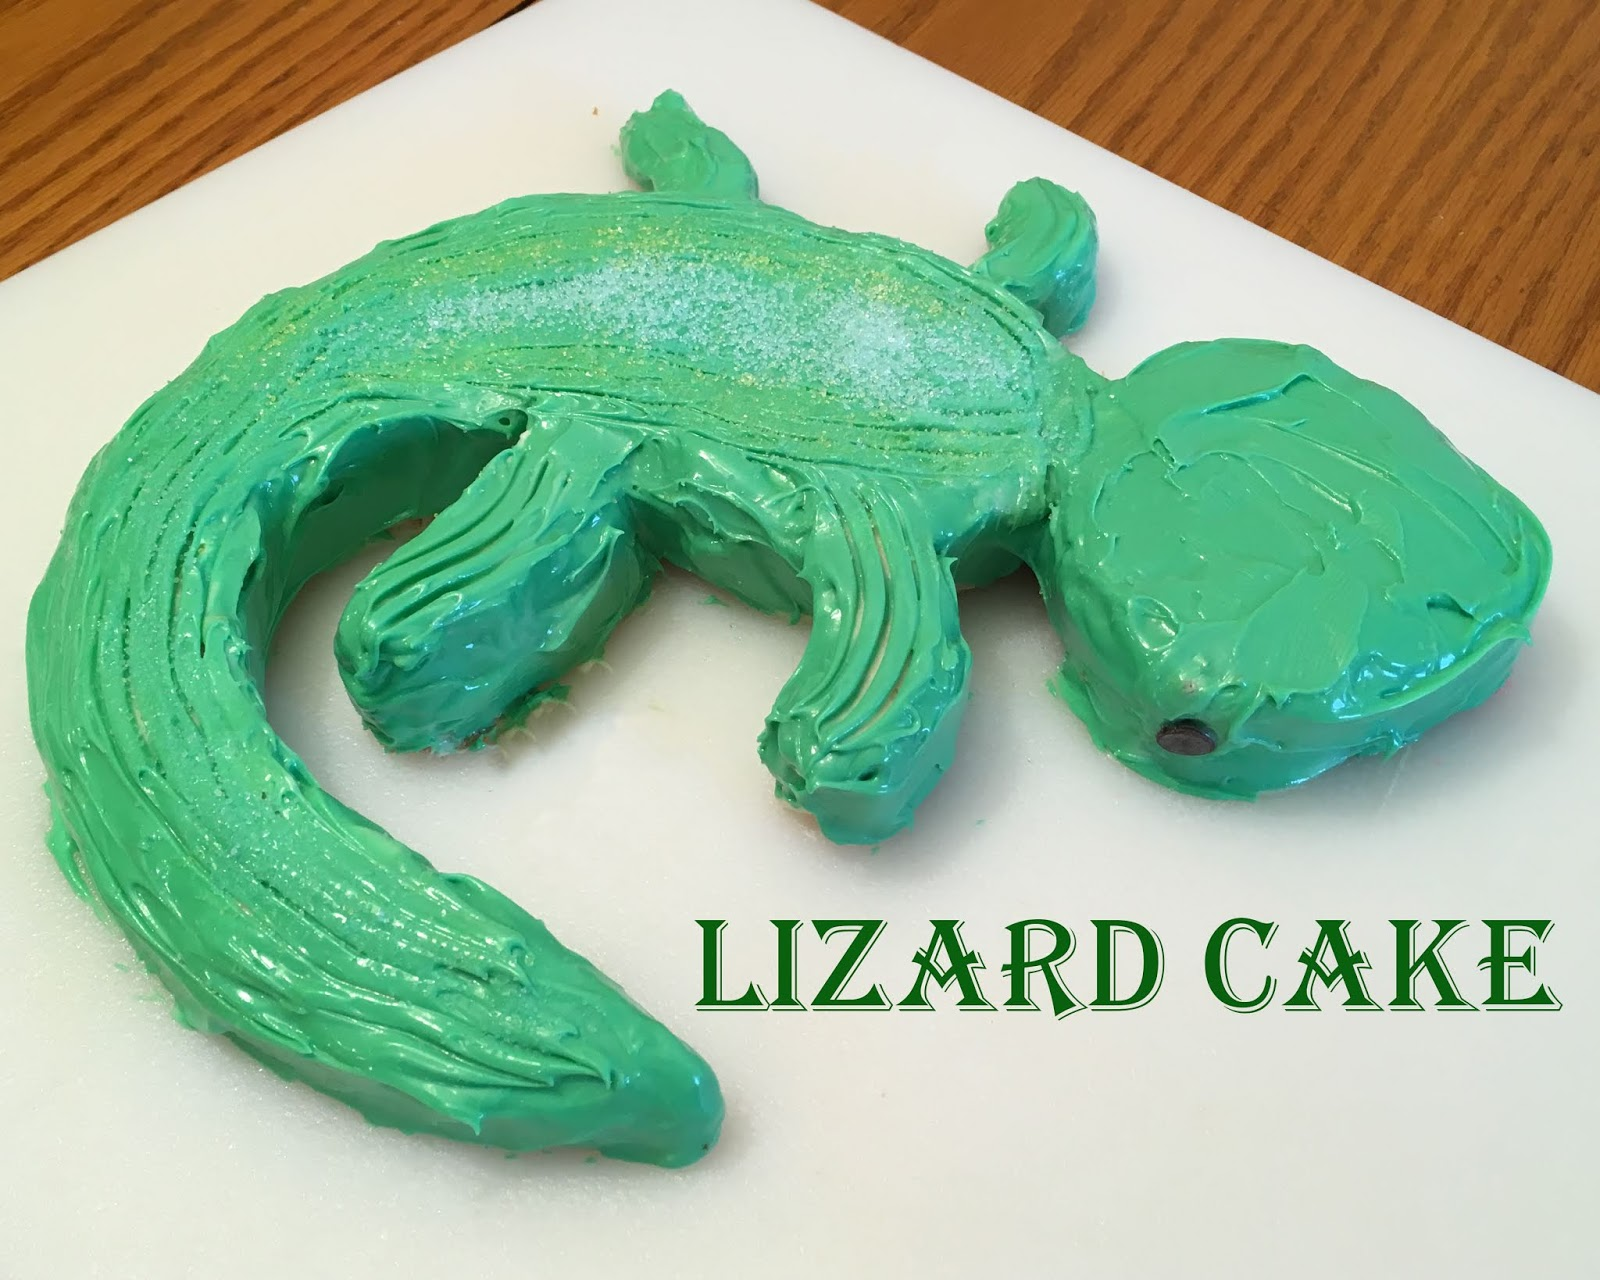 What I Live For: Lizard Cake